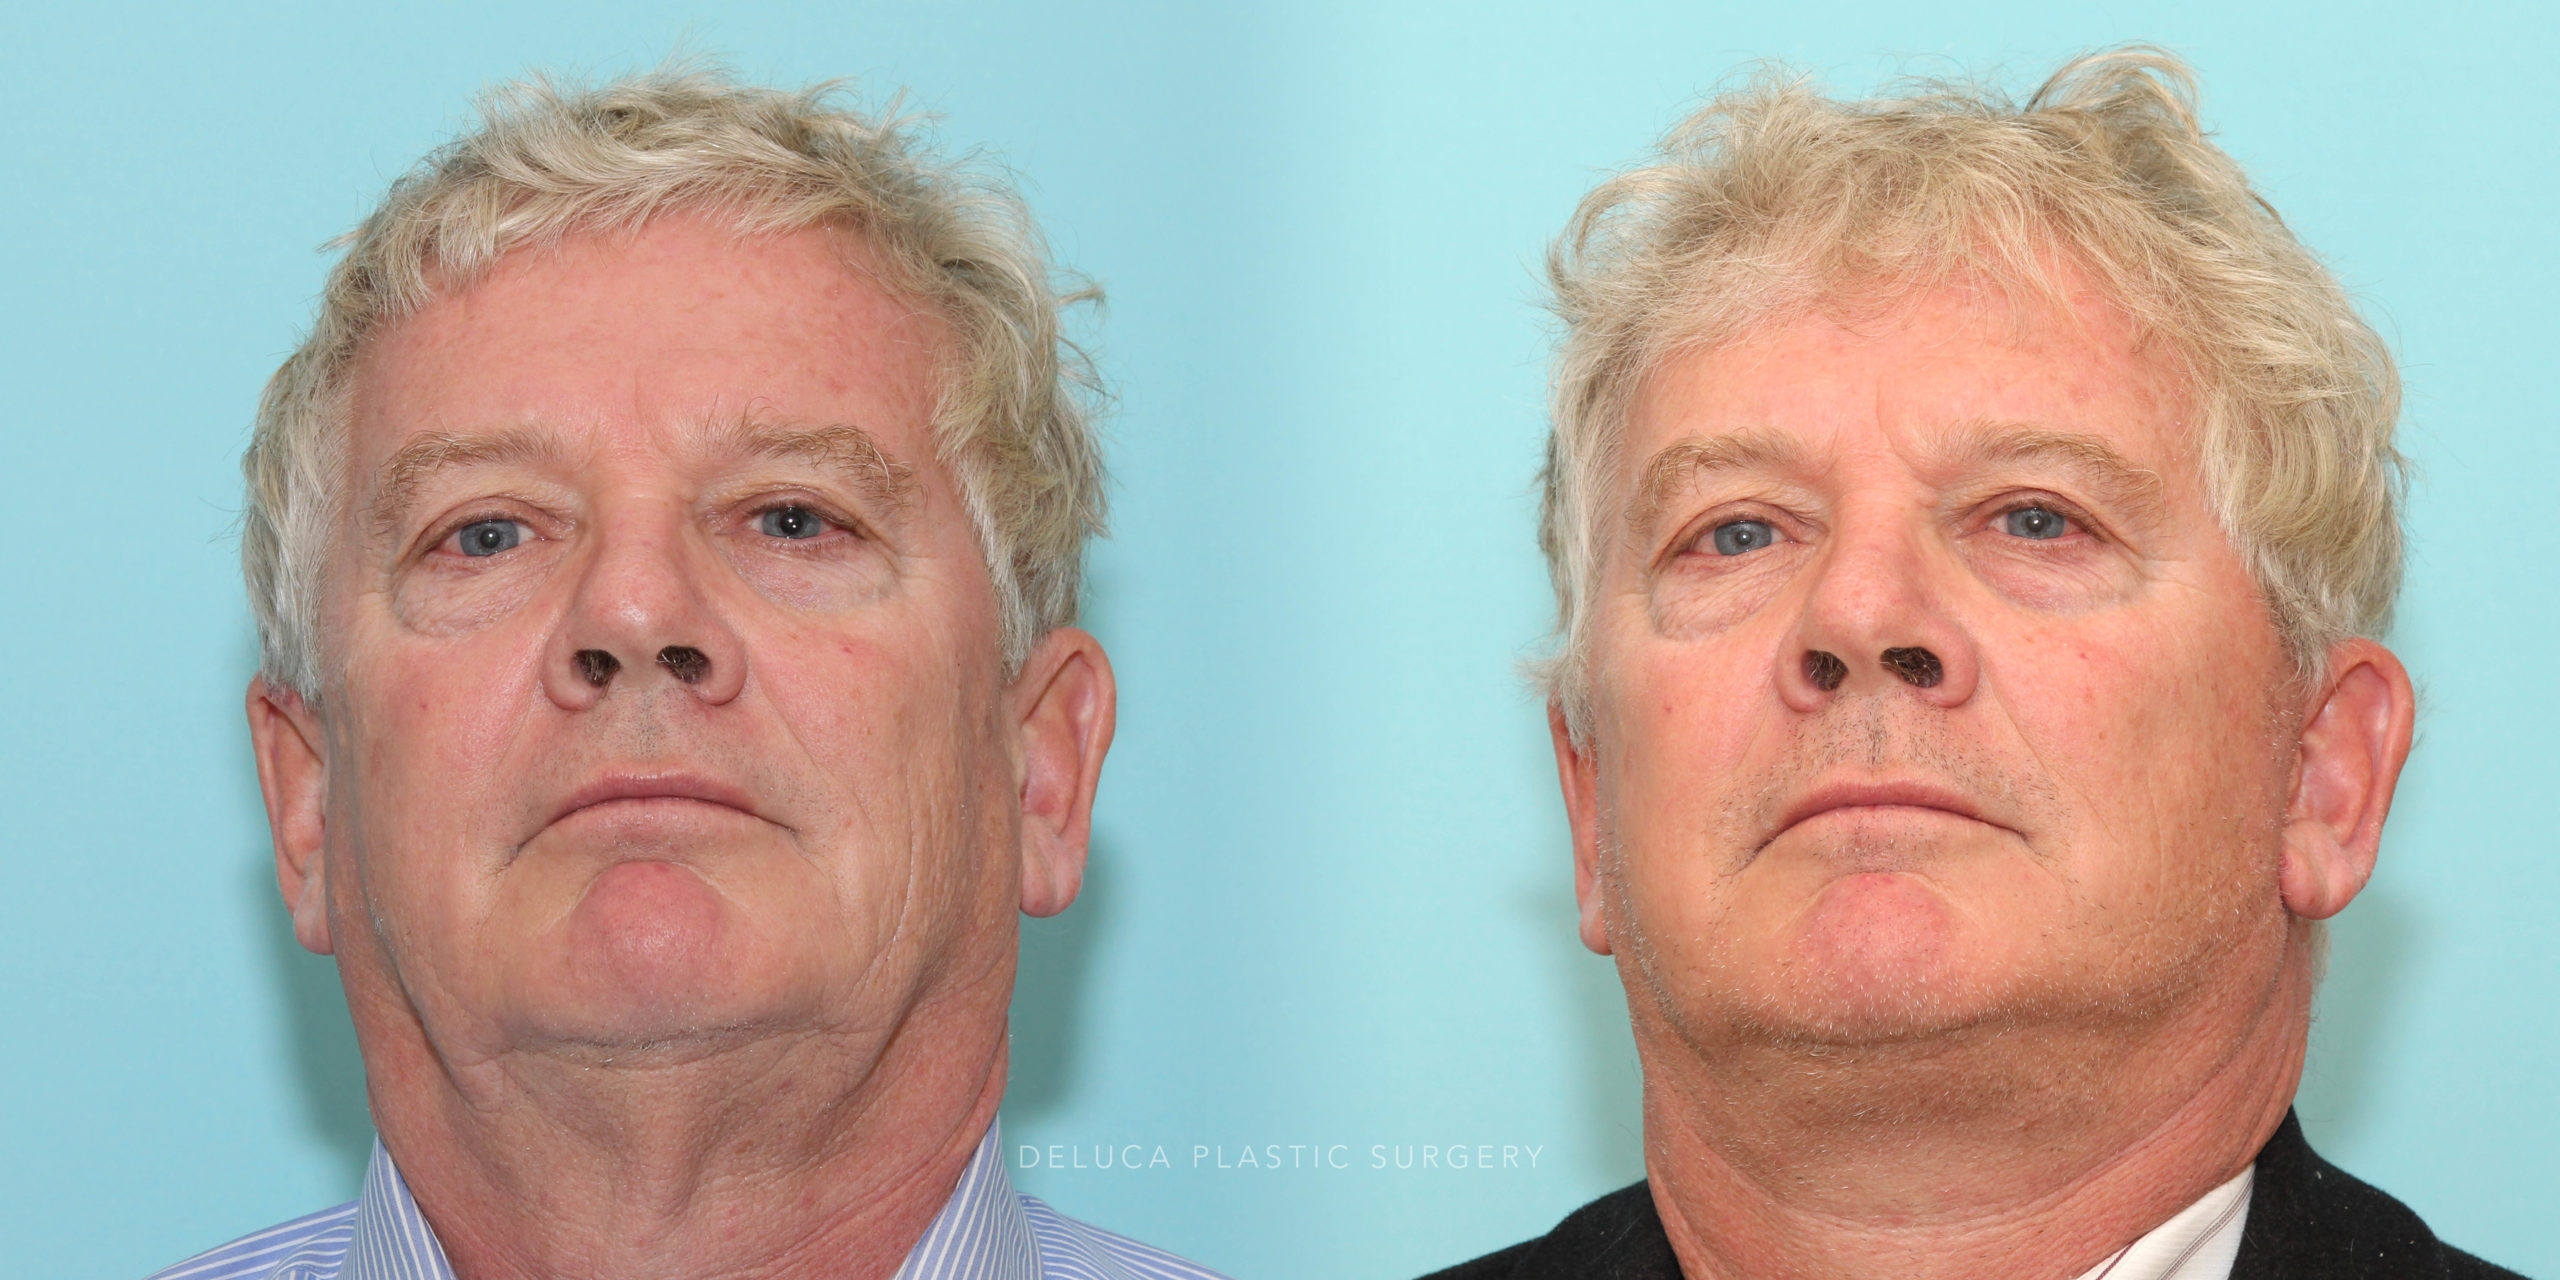 63 y/o Male Modified Face and Neck Lift and Liposuction of The Neck